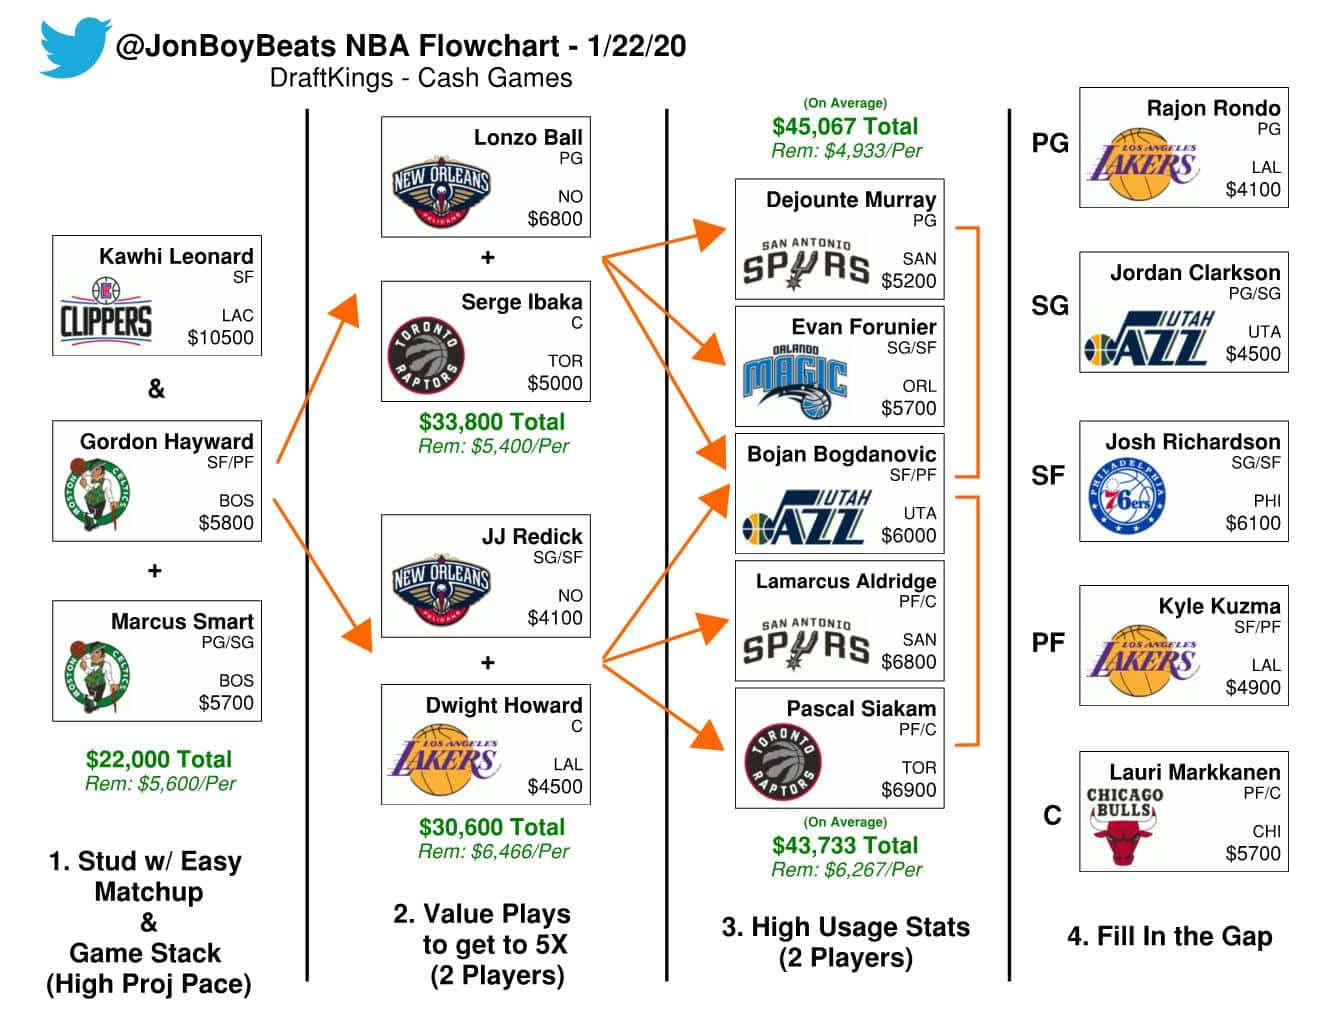 DraftKings Daily Fantasy Basketball Picks (1/22/20): Introducing NBA DFS Flowchart